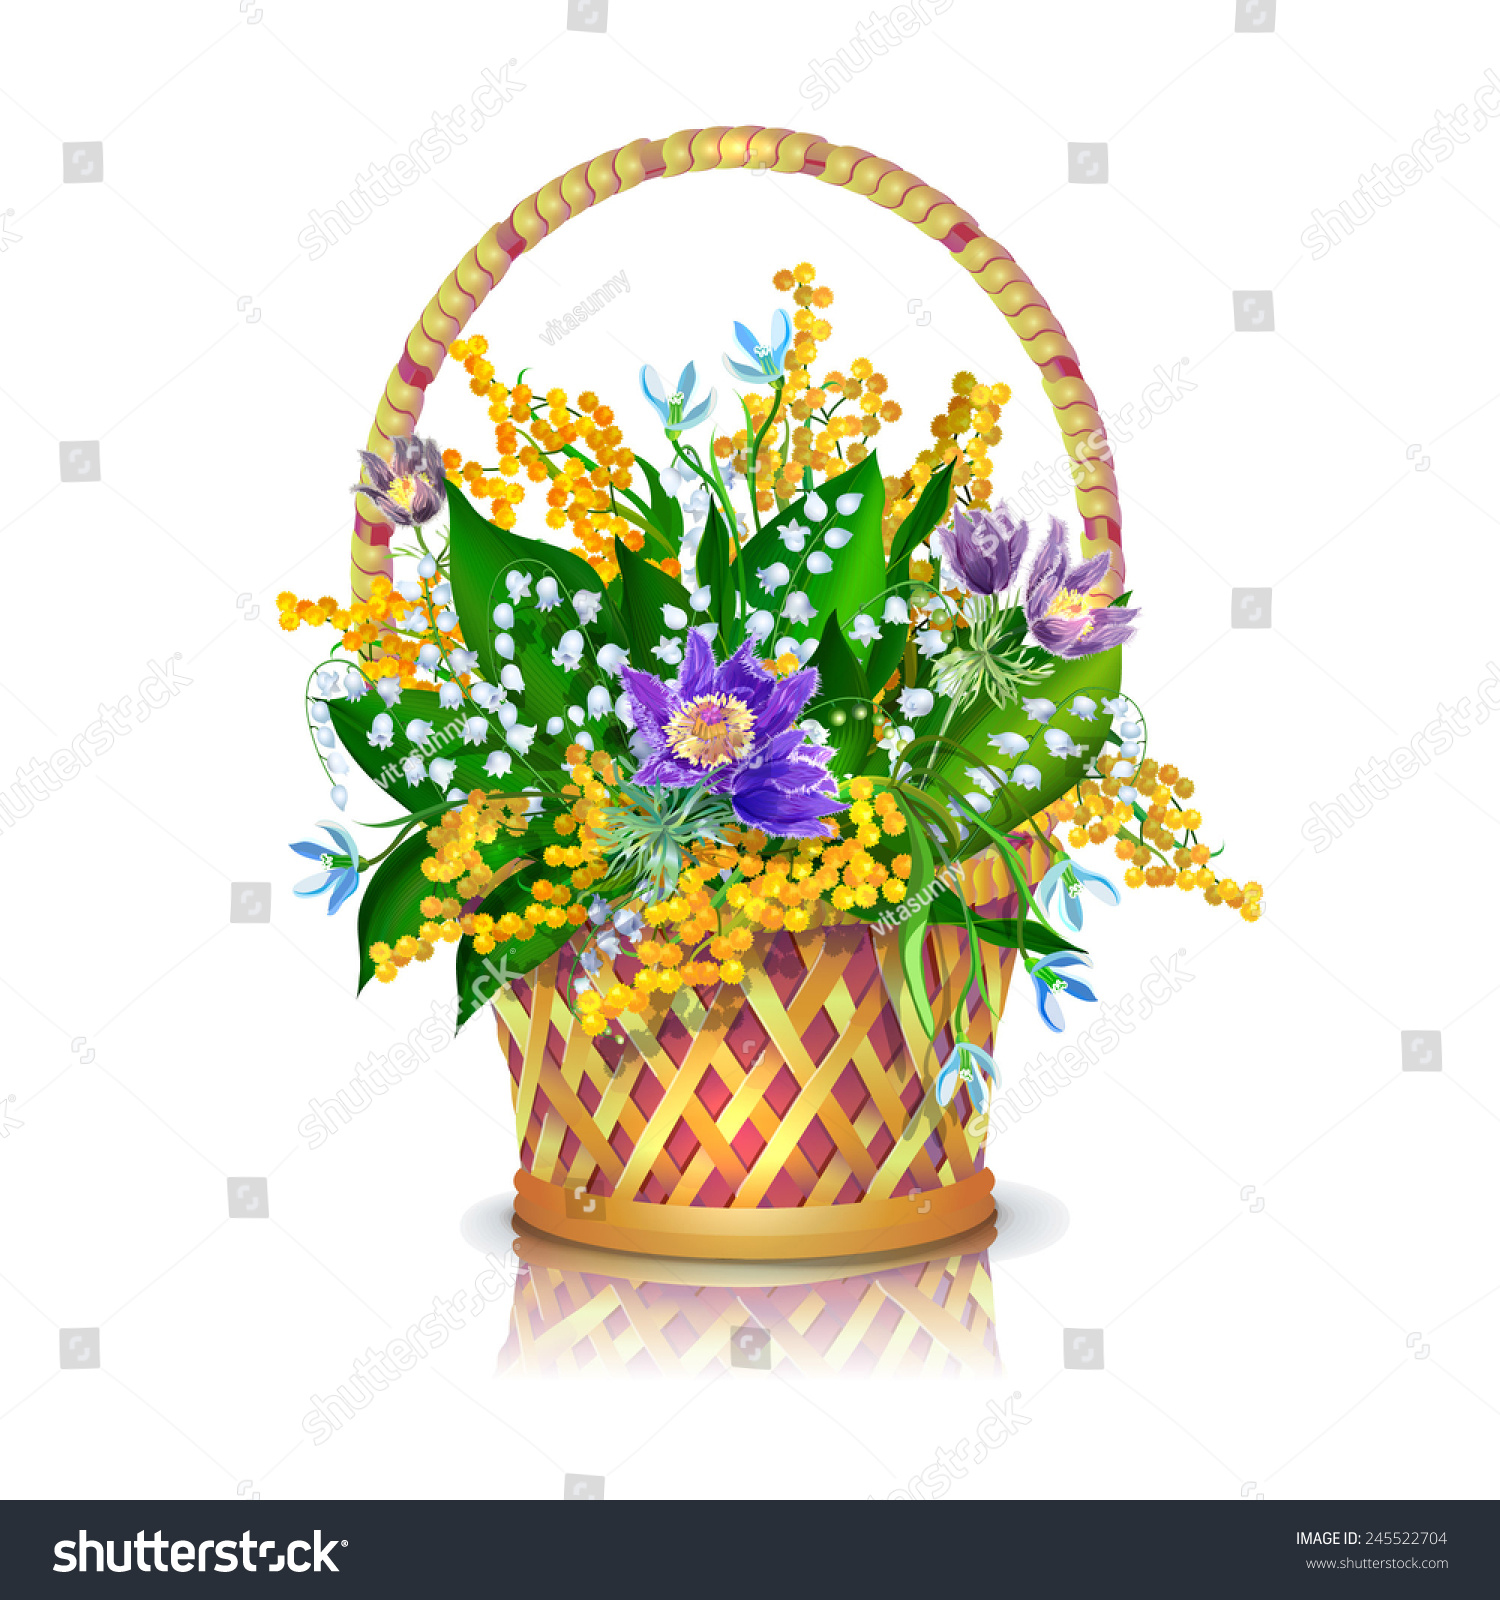 Basket Bouquet Spring Flowers Sleepgrass Snowdrops Stock Vector